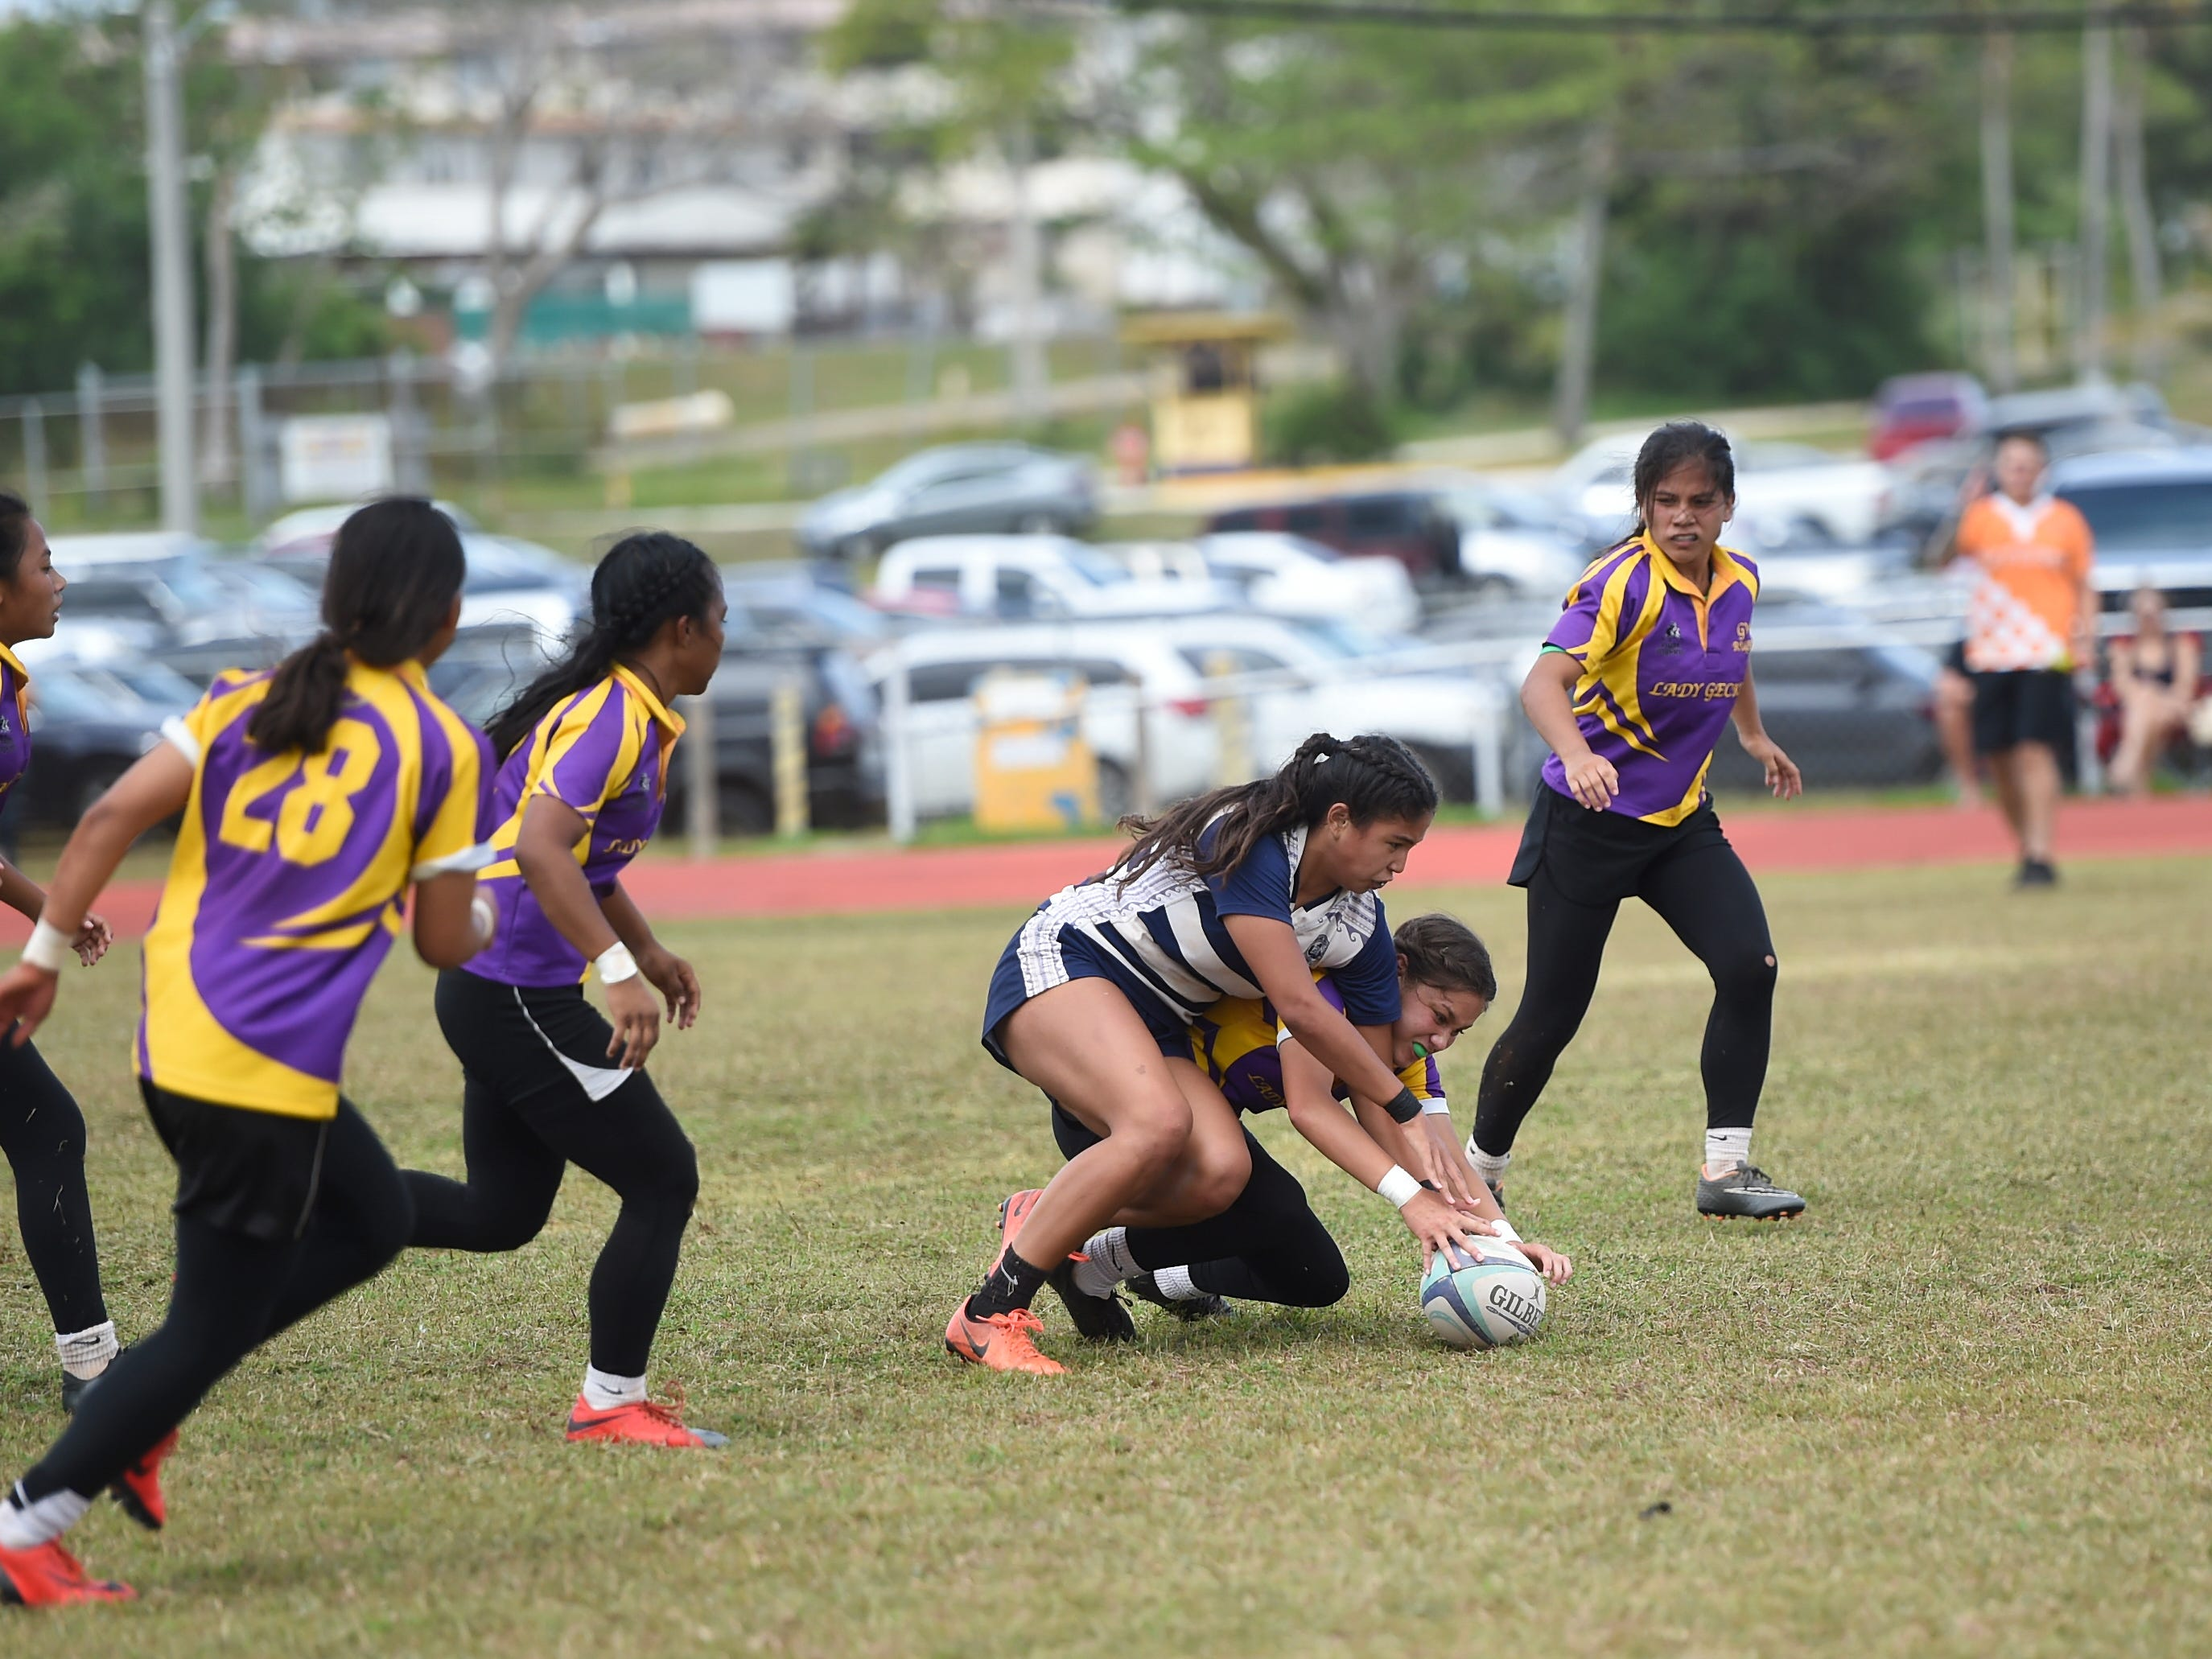 The George Washington Geckos and Notre Dame Royals battle for the GRFU/IIAAG Girls Rugby title at the GW High School Field in Mangilao, March 16, 2019. The Royals went on to beat the Geckos 21-17 for the rugby title.